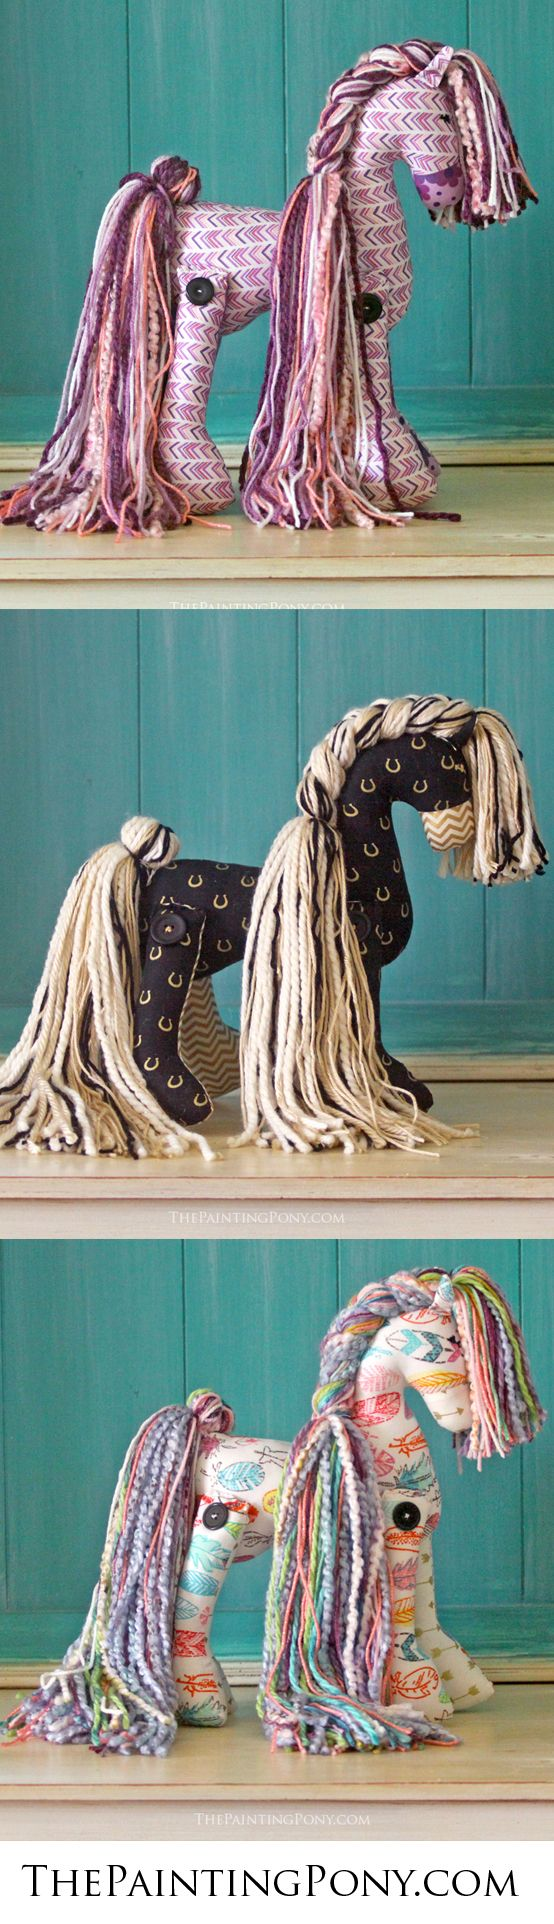 CUTE gift for the horse lover! Any equestrian will love getting one of these cute and whimsical ponies with colorful patterns. Great gift for any occasion from a first birthday to a graduation or for Christmas! Anyone who loves the sport of horseback riding from hunter jumper and dressage to the cowgirl style barrel racing and reining quarter horses will enjoy these whimsical horses. Made in the USA. #giftsforhorselovers #equestrian #horses